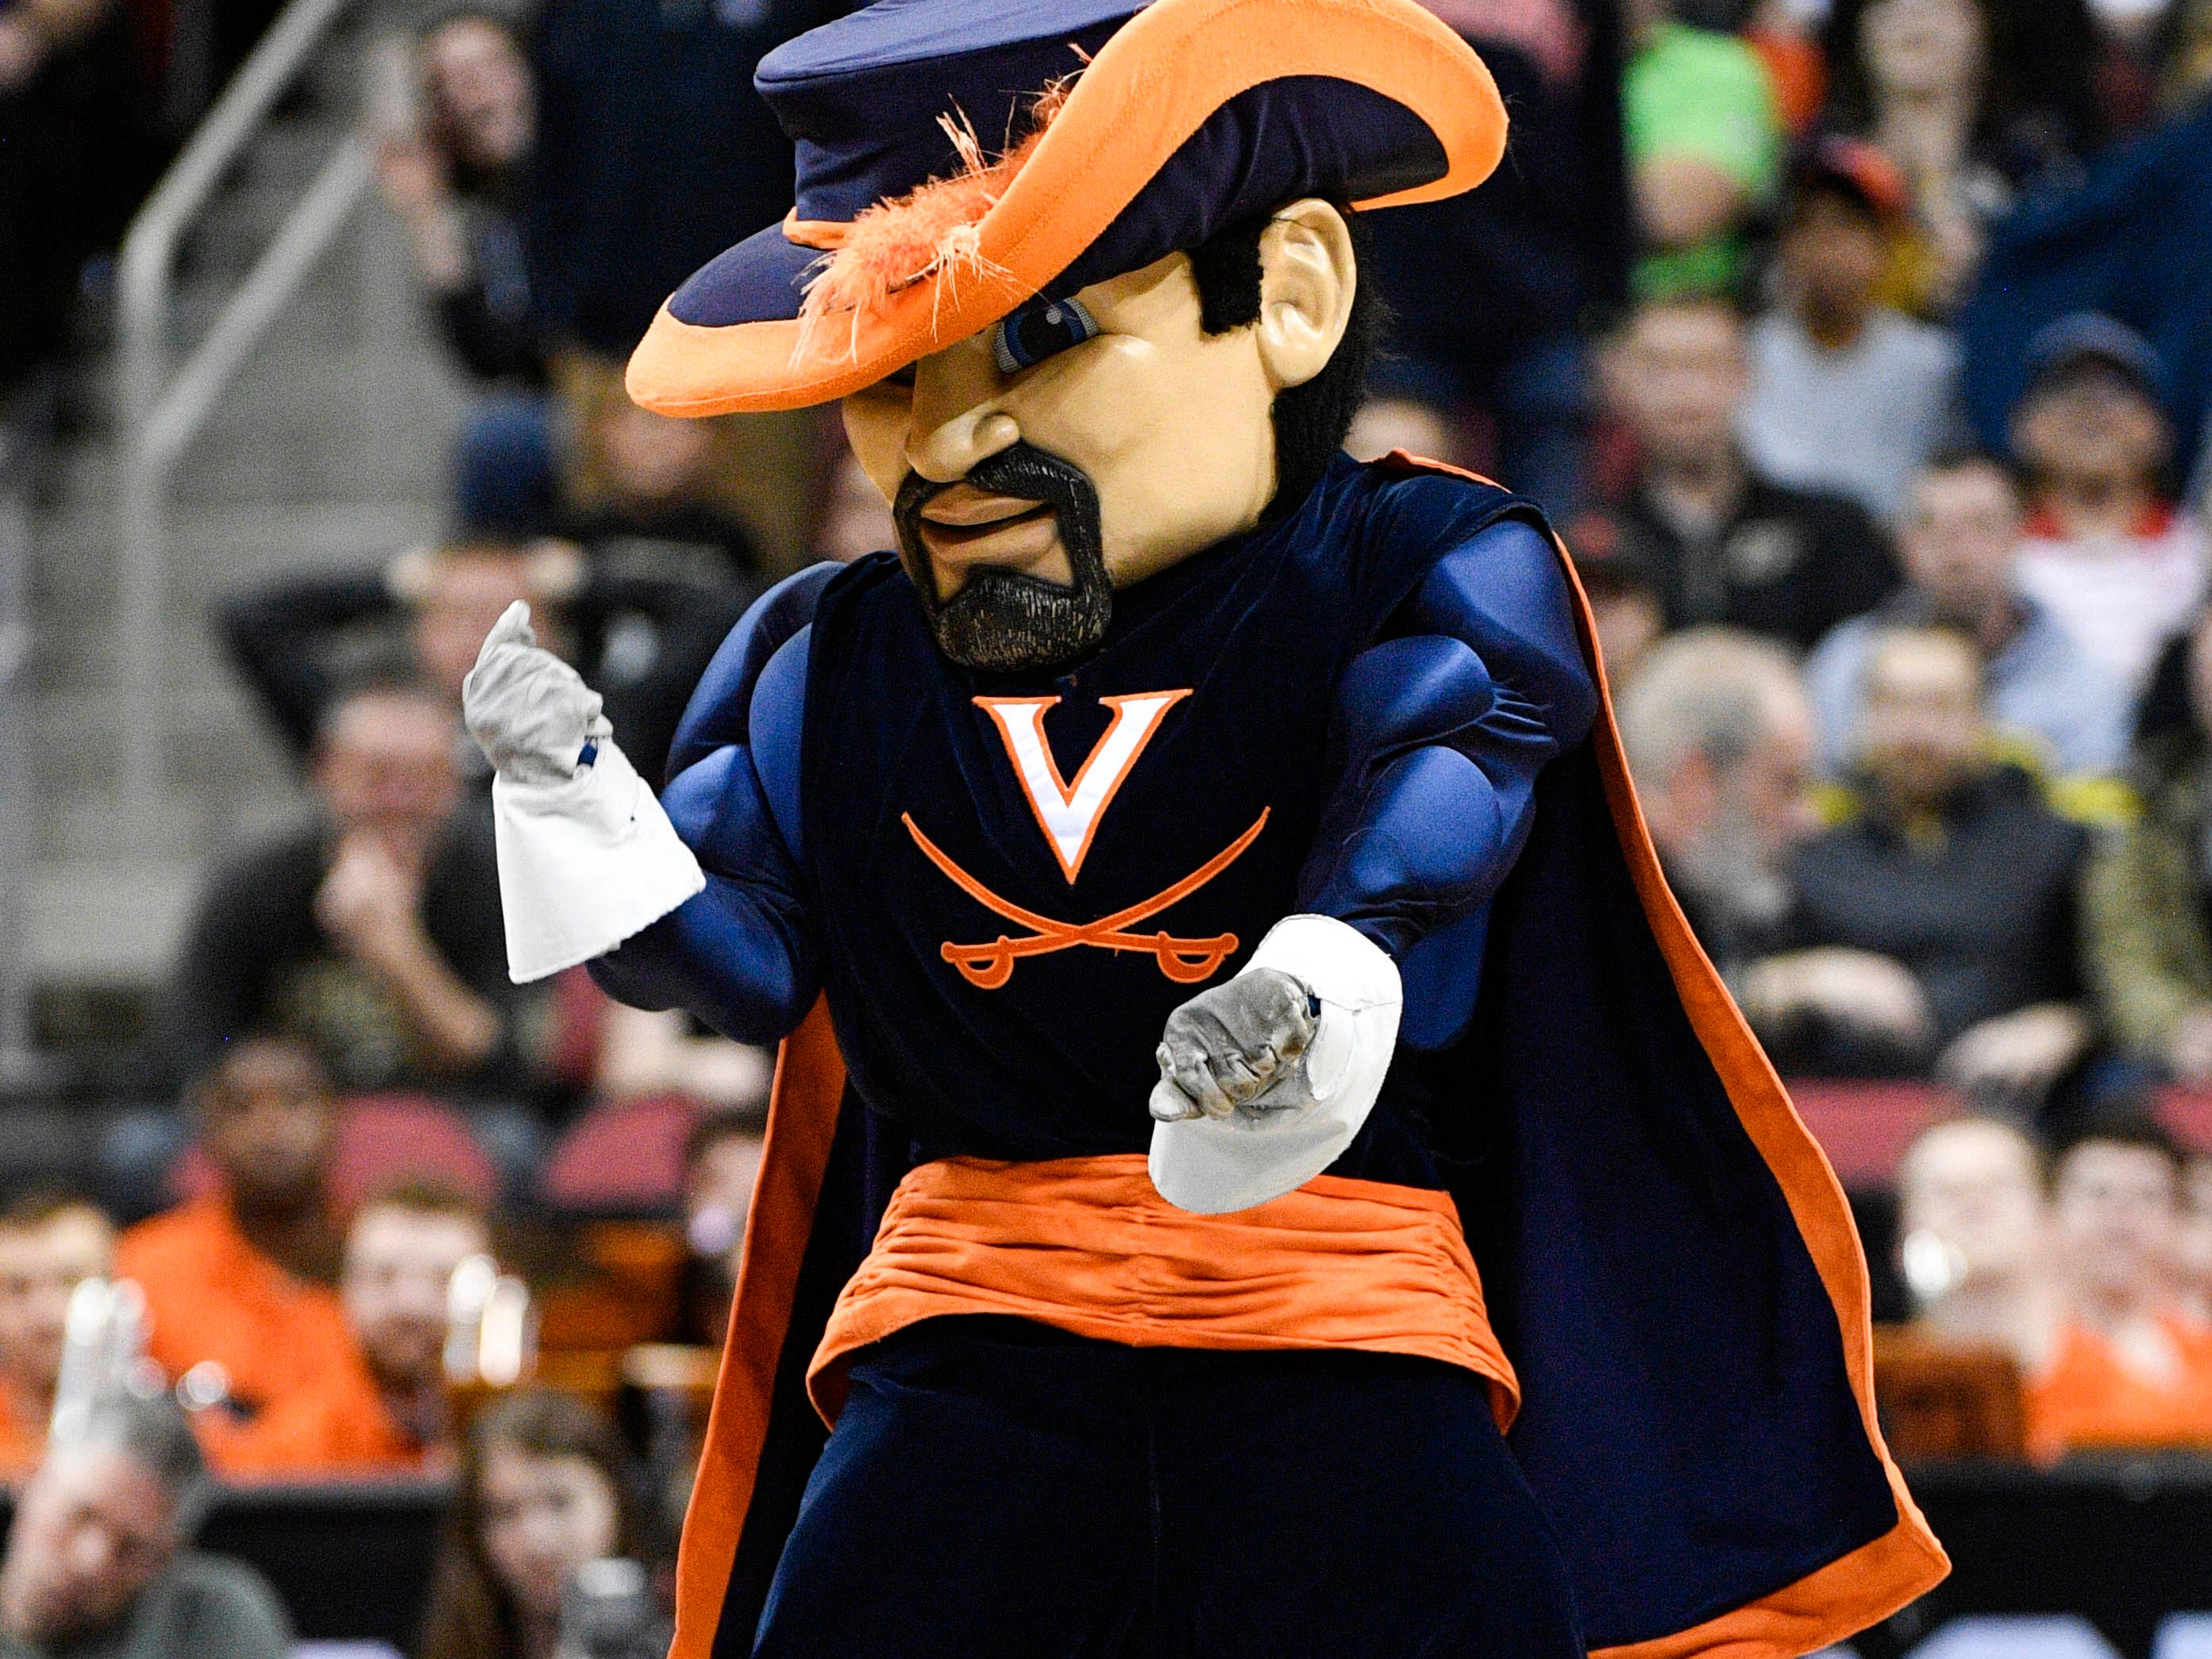 Mar 30, 2019; Louisville, KY, United States; Virginia Cavaliers mascot performs during the first half in the championship game against the Purdue Boilermakers of the south regional of the 2019 NCAA Tournament at KFC Yum Center. Mandatory Credit: Jamie Rhodes-USA TODAY Sports